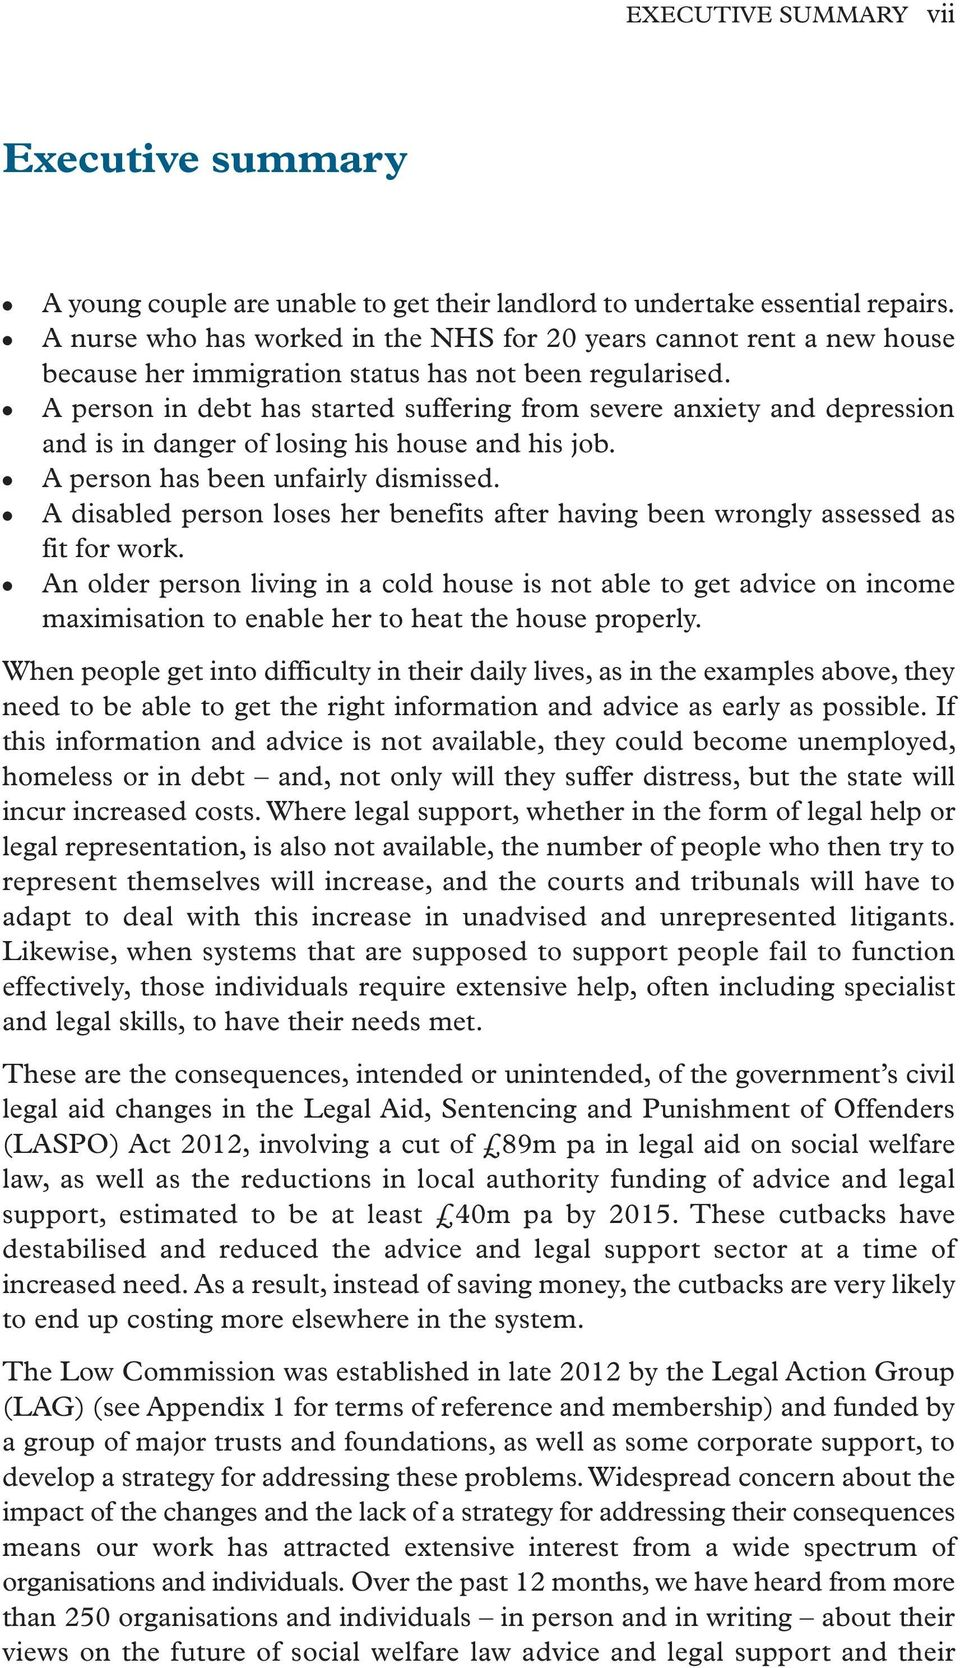 A person in debt has started suffering from severe anxiety and depression and is in danger of losing his house and his job. A person has been unfairly dismissed.